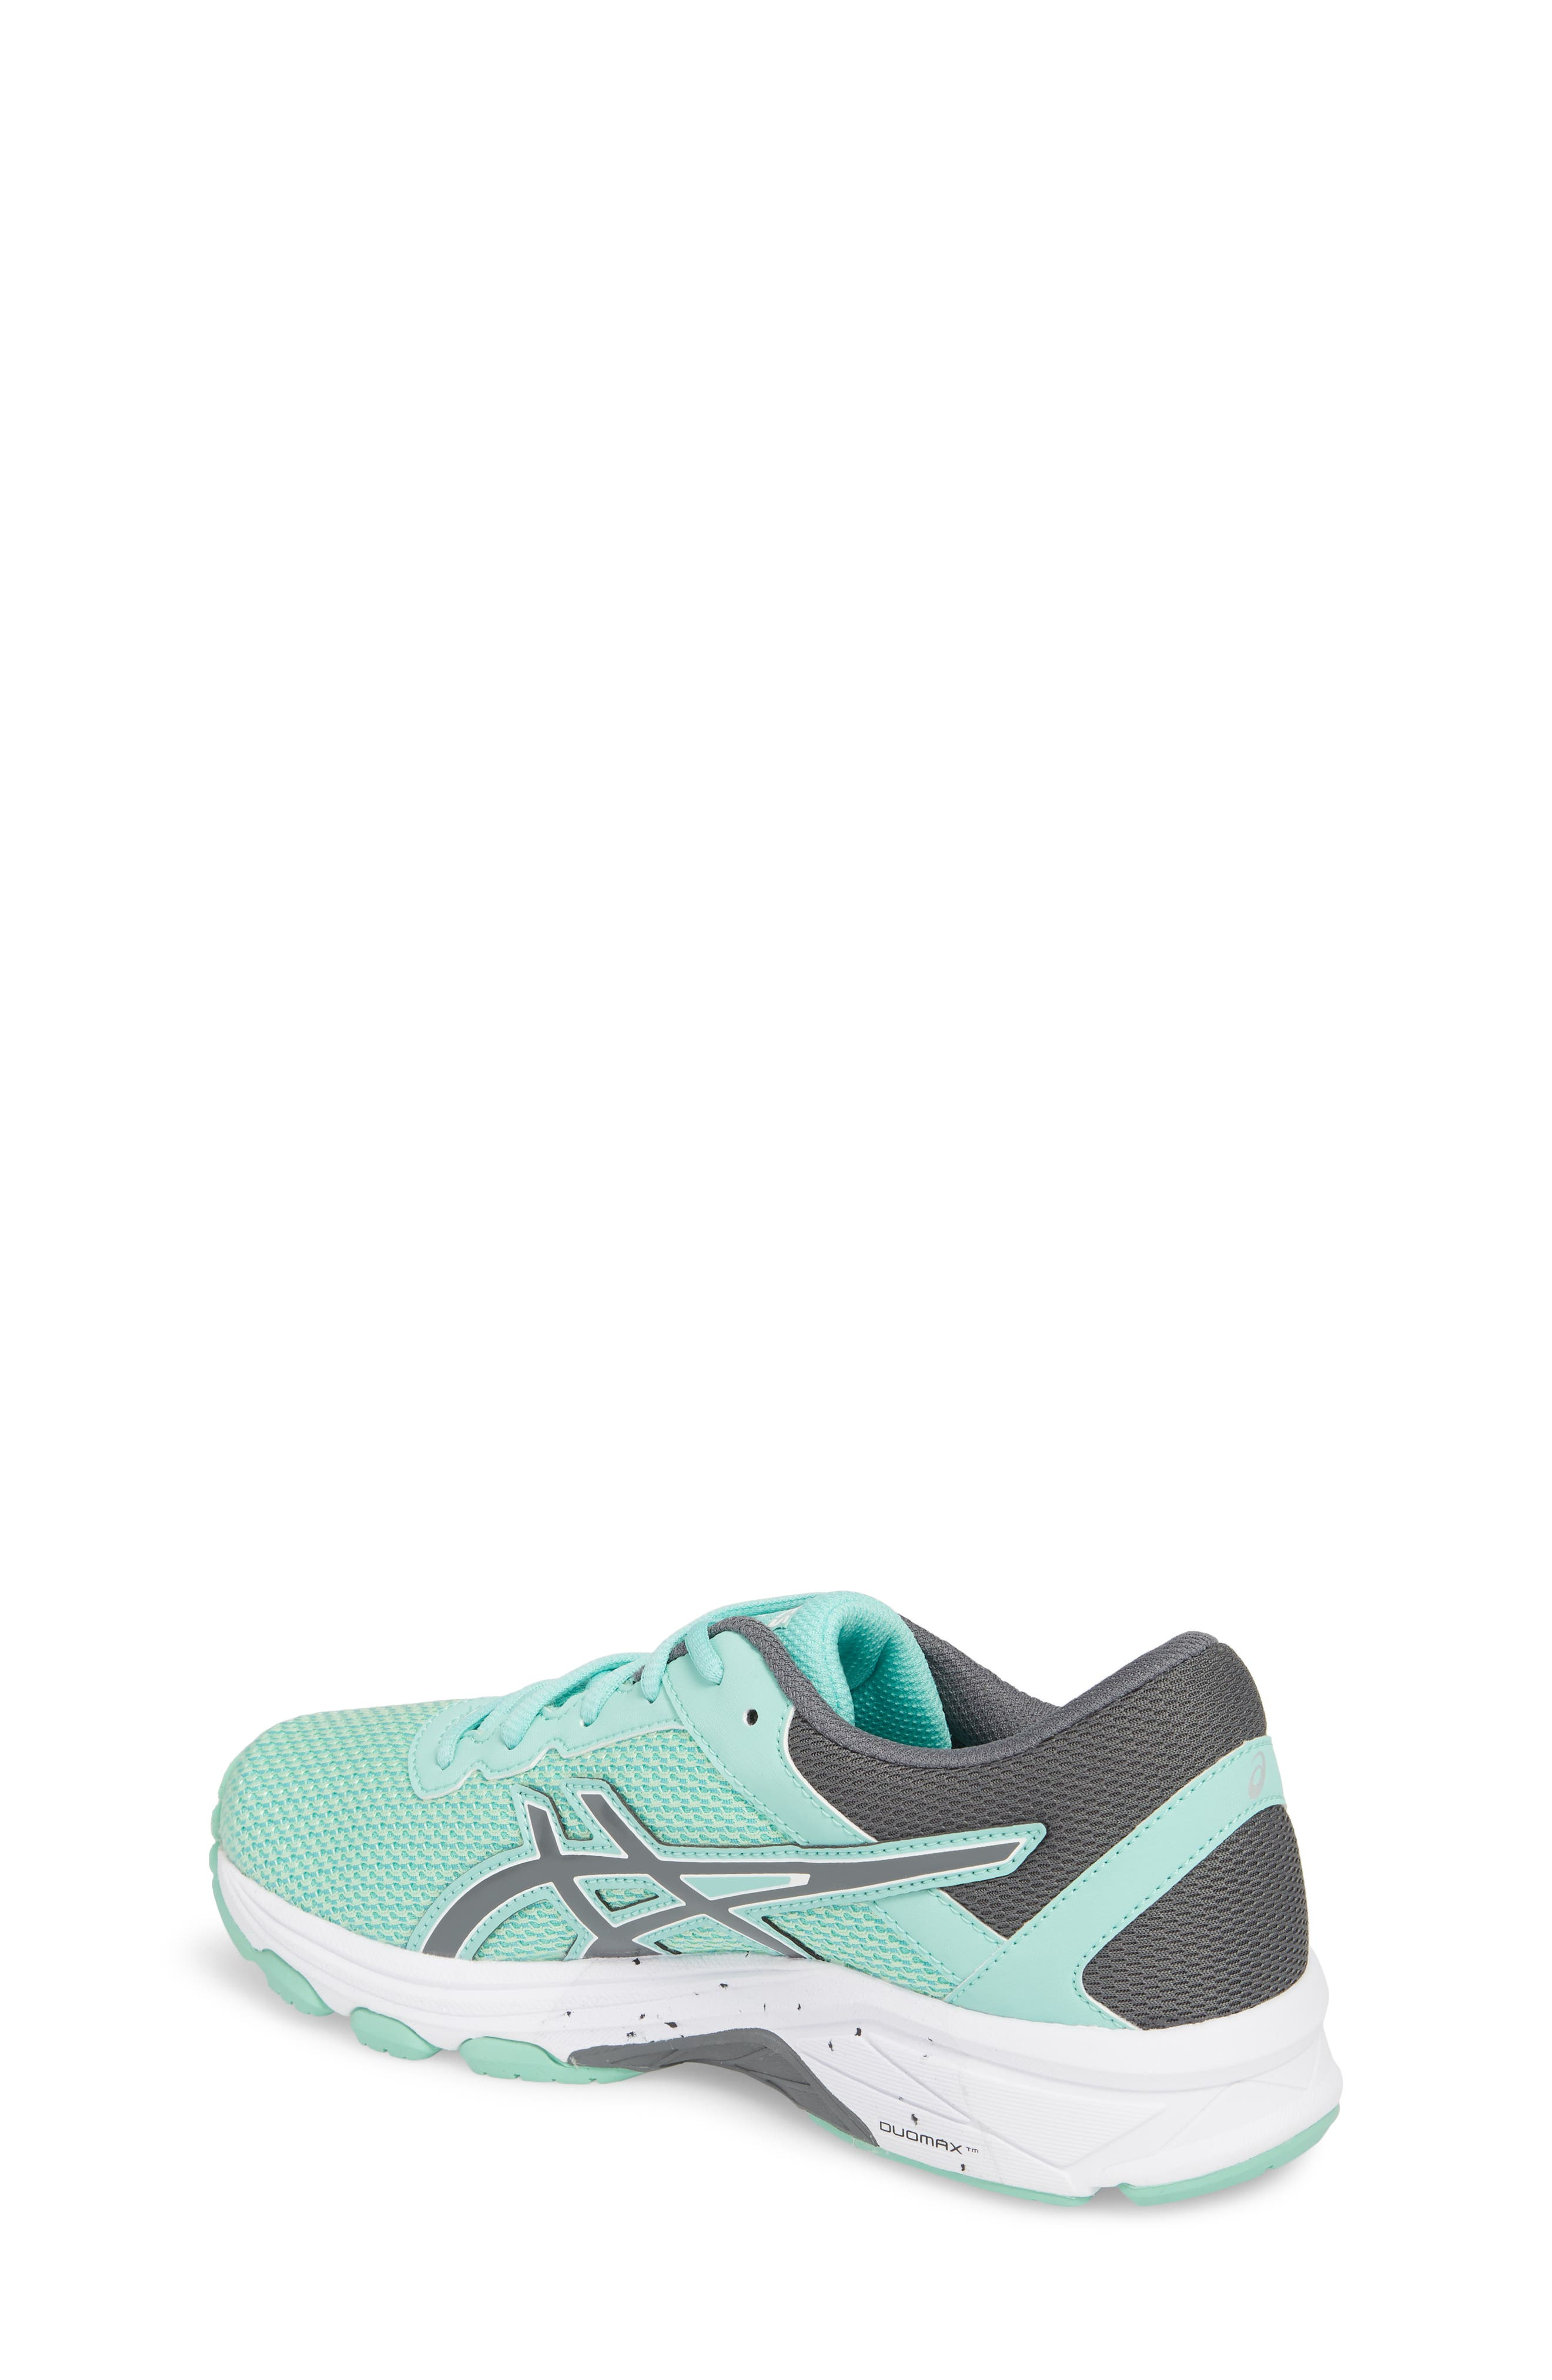 Asics GT-1000<sup>™</sup> 6 GS Sneaker,                             Alternate thumbnail 2, color,                             379